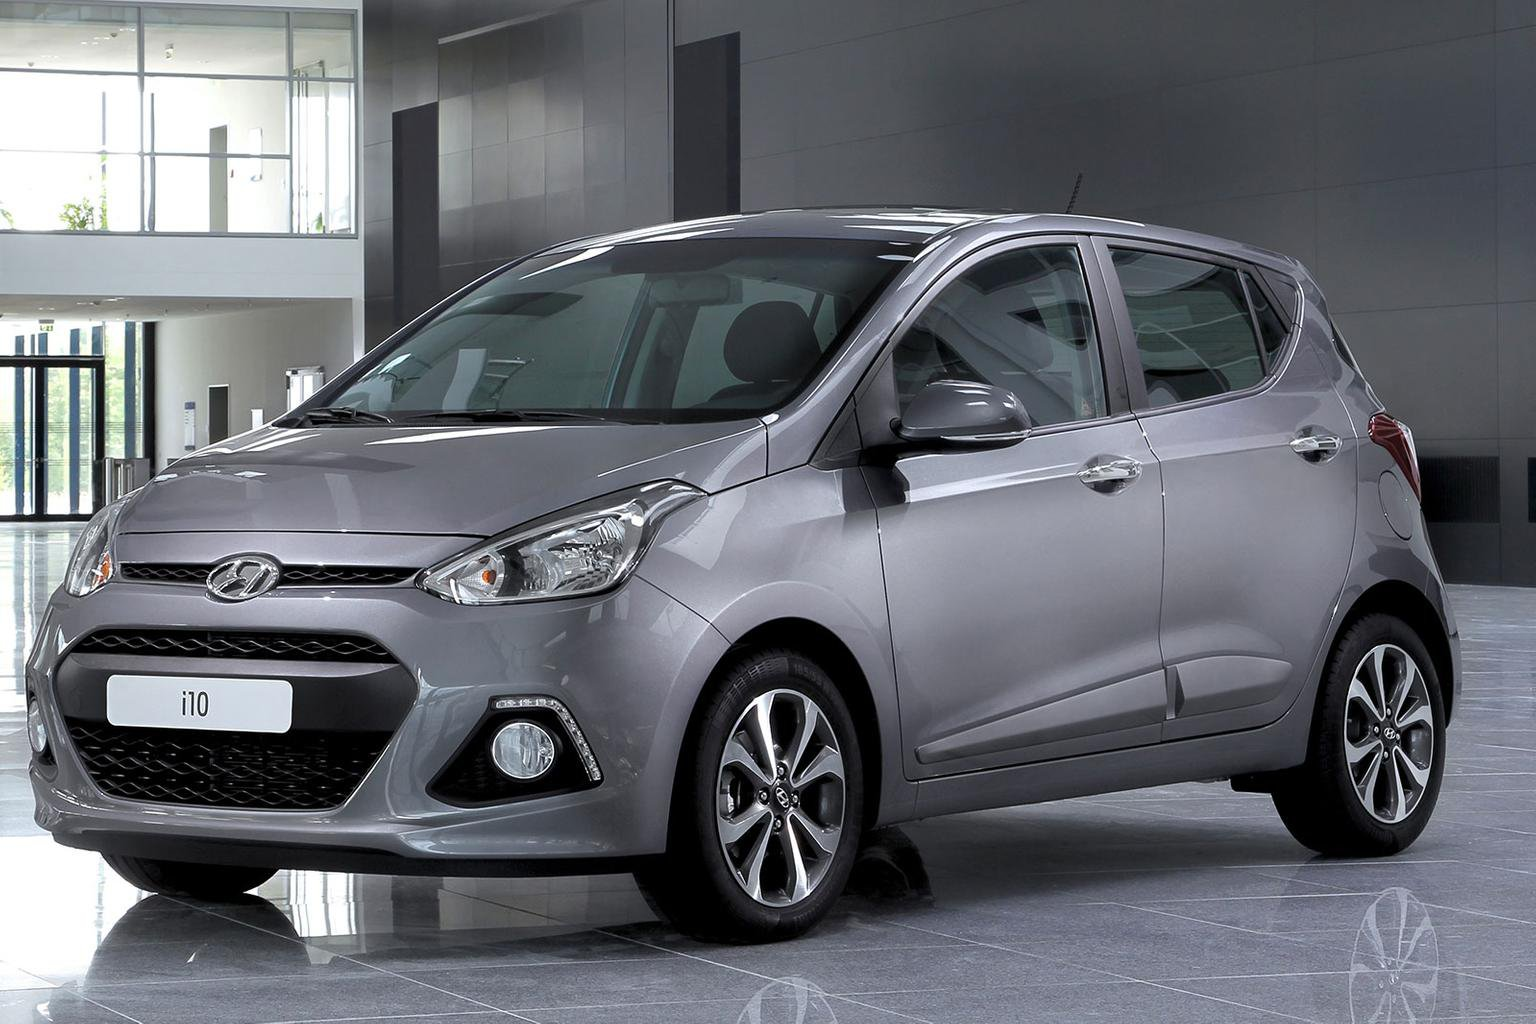 New Hyundai i10 prices announced